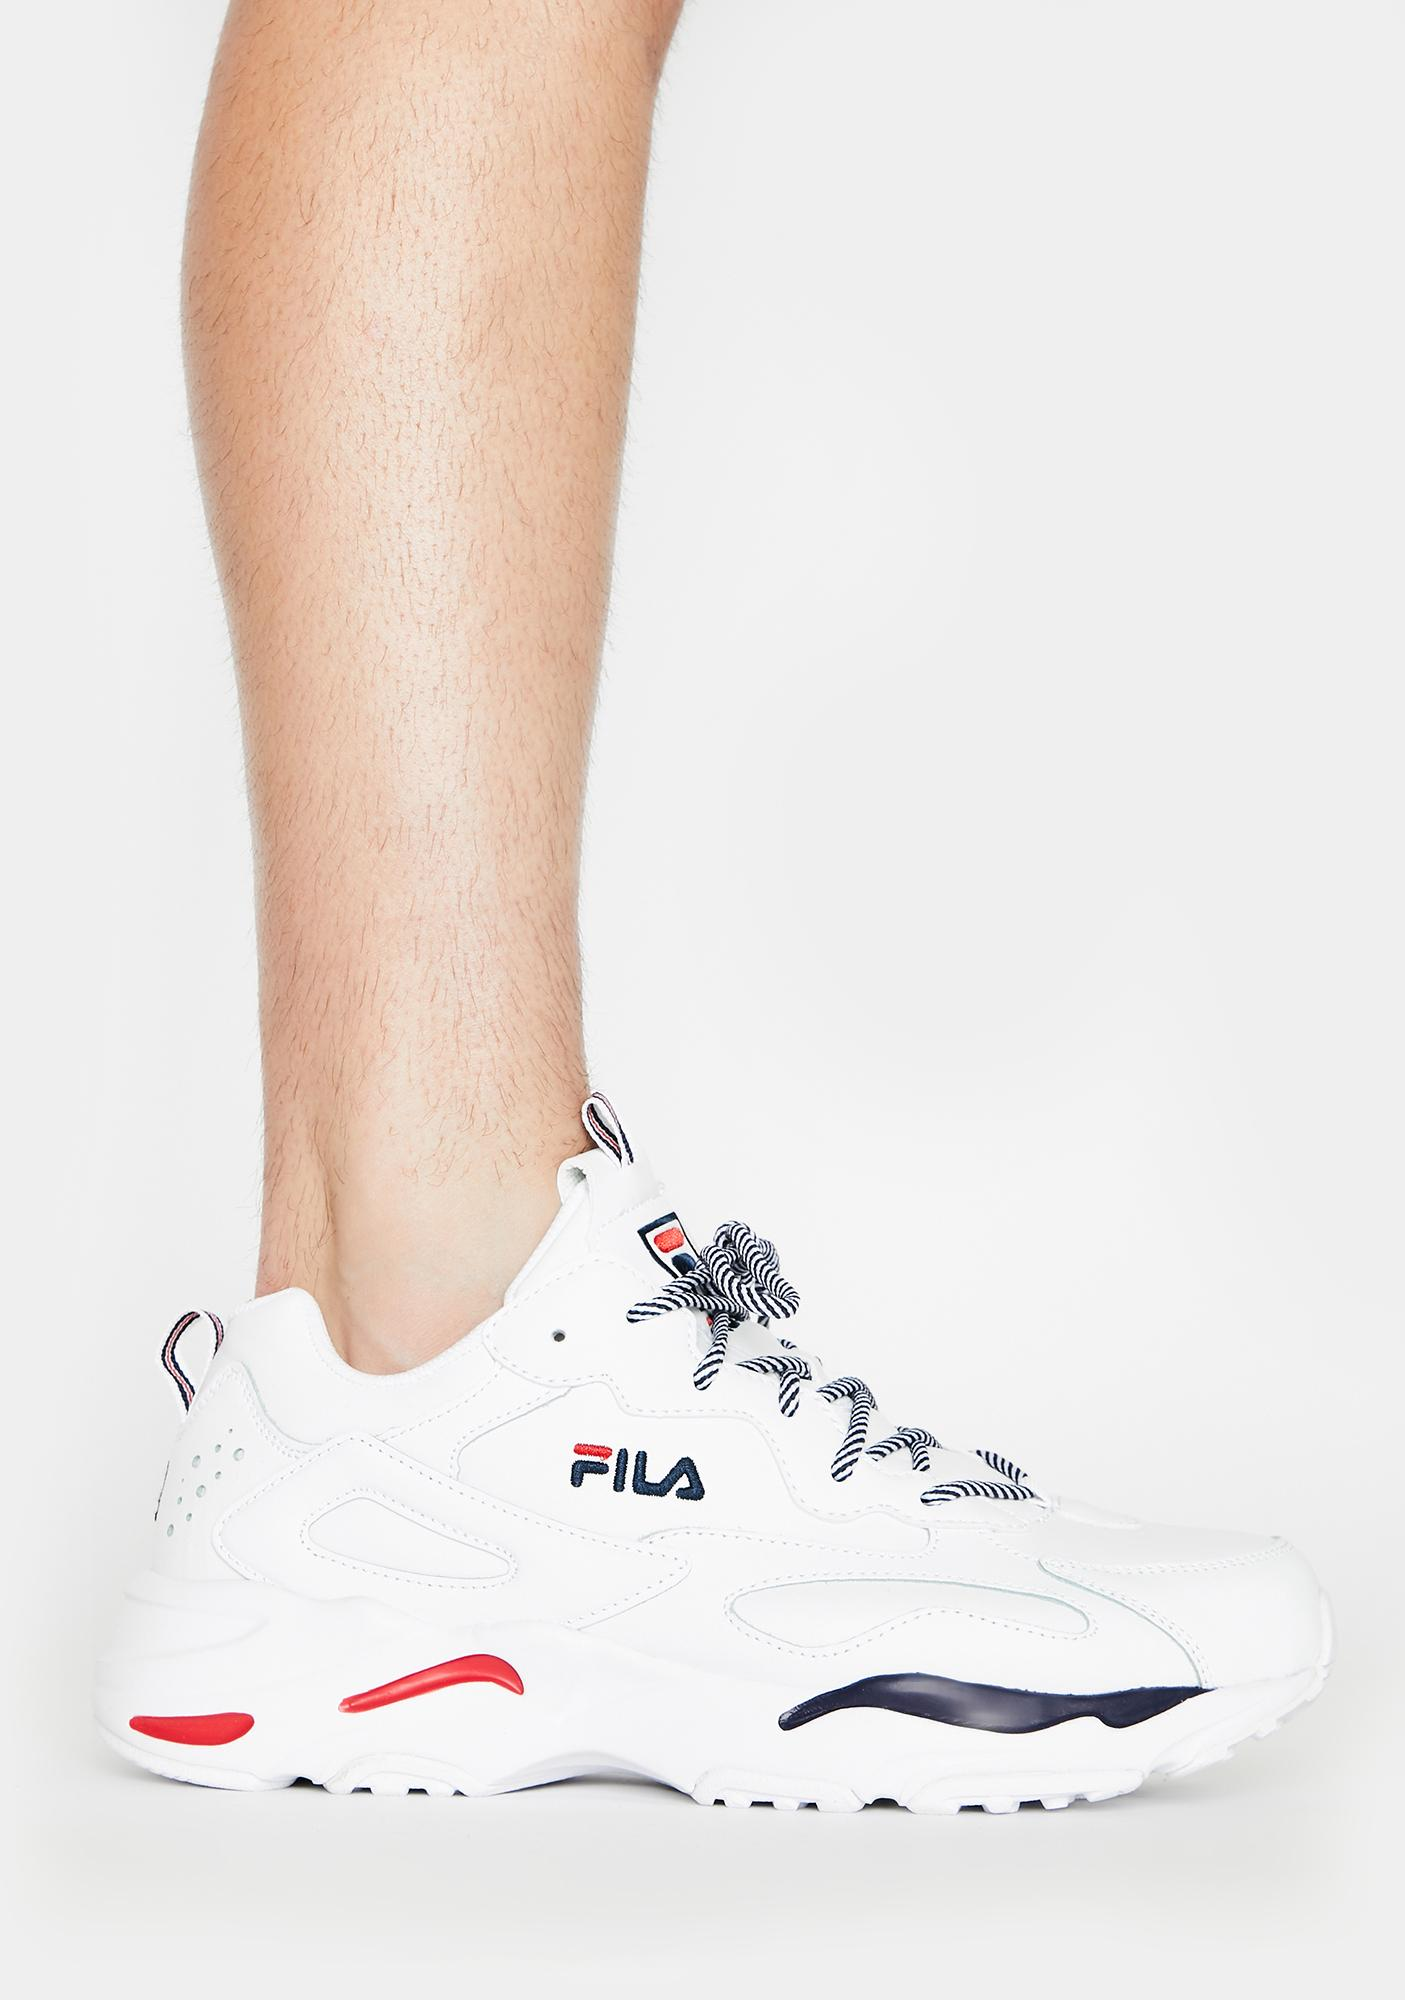 Fila Unisex White Ray Tracer Sneakers